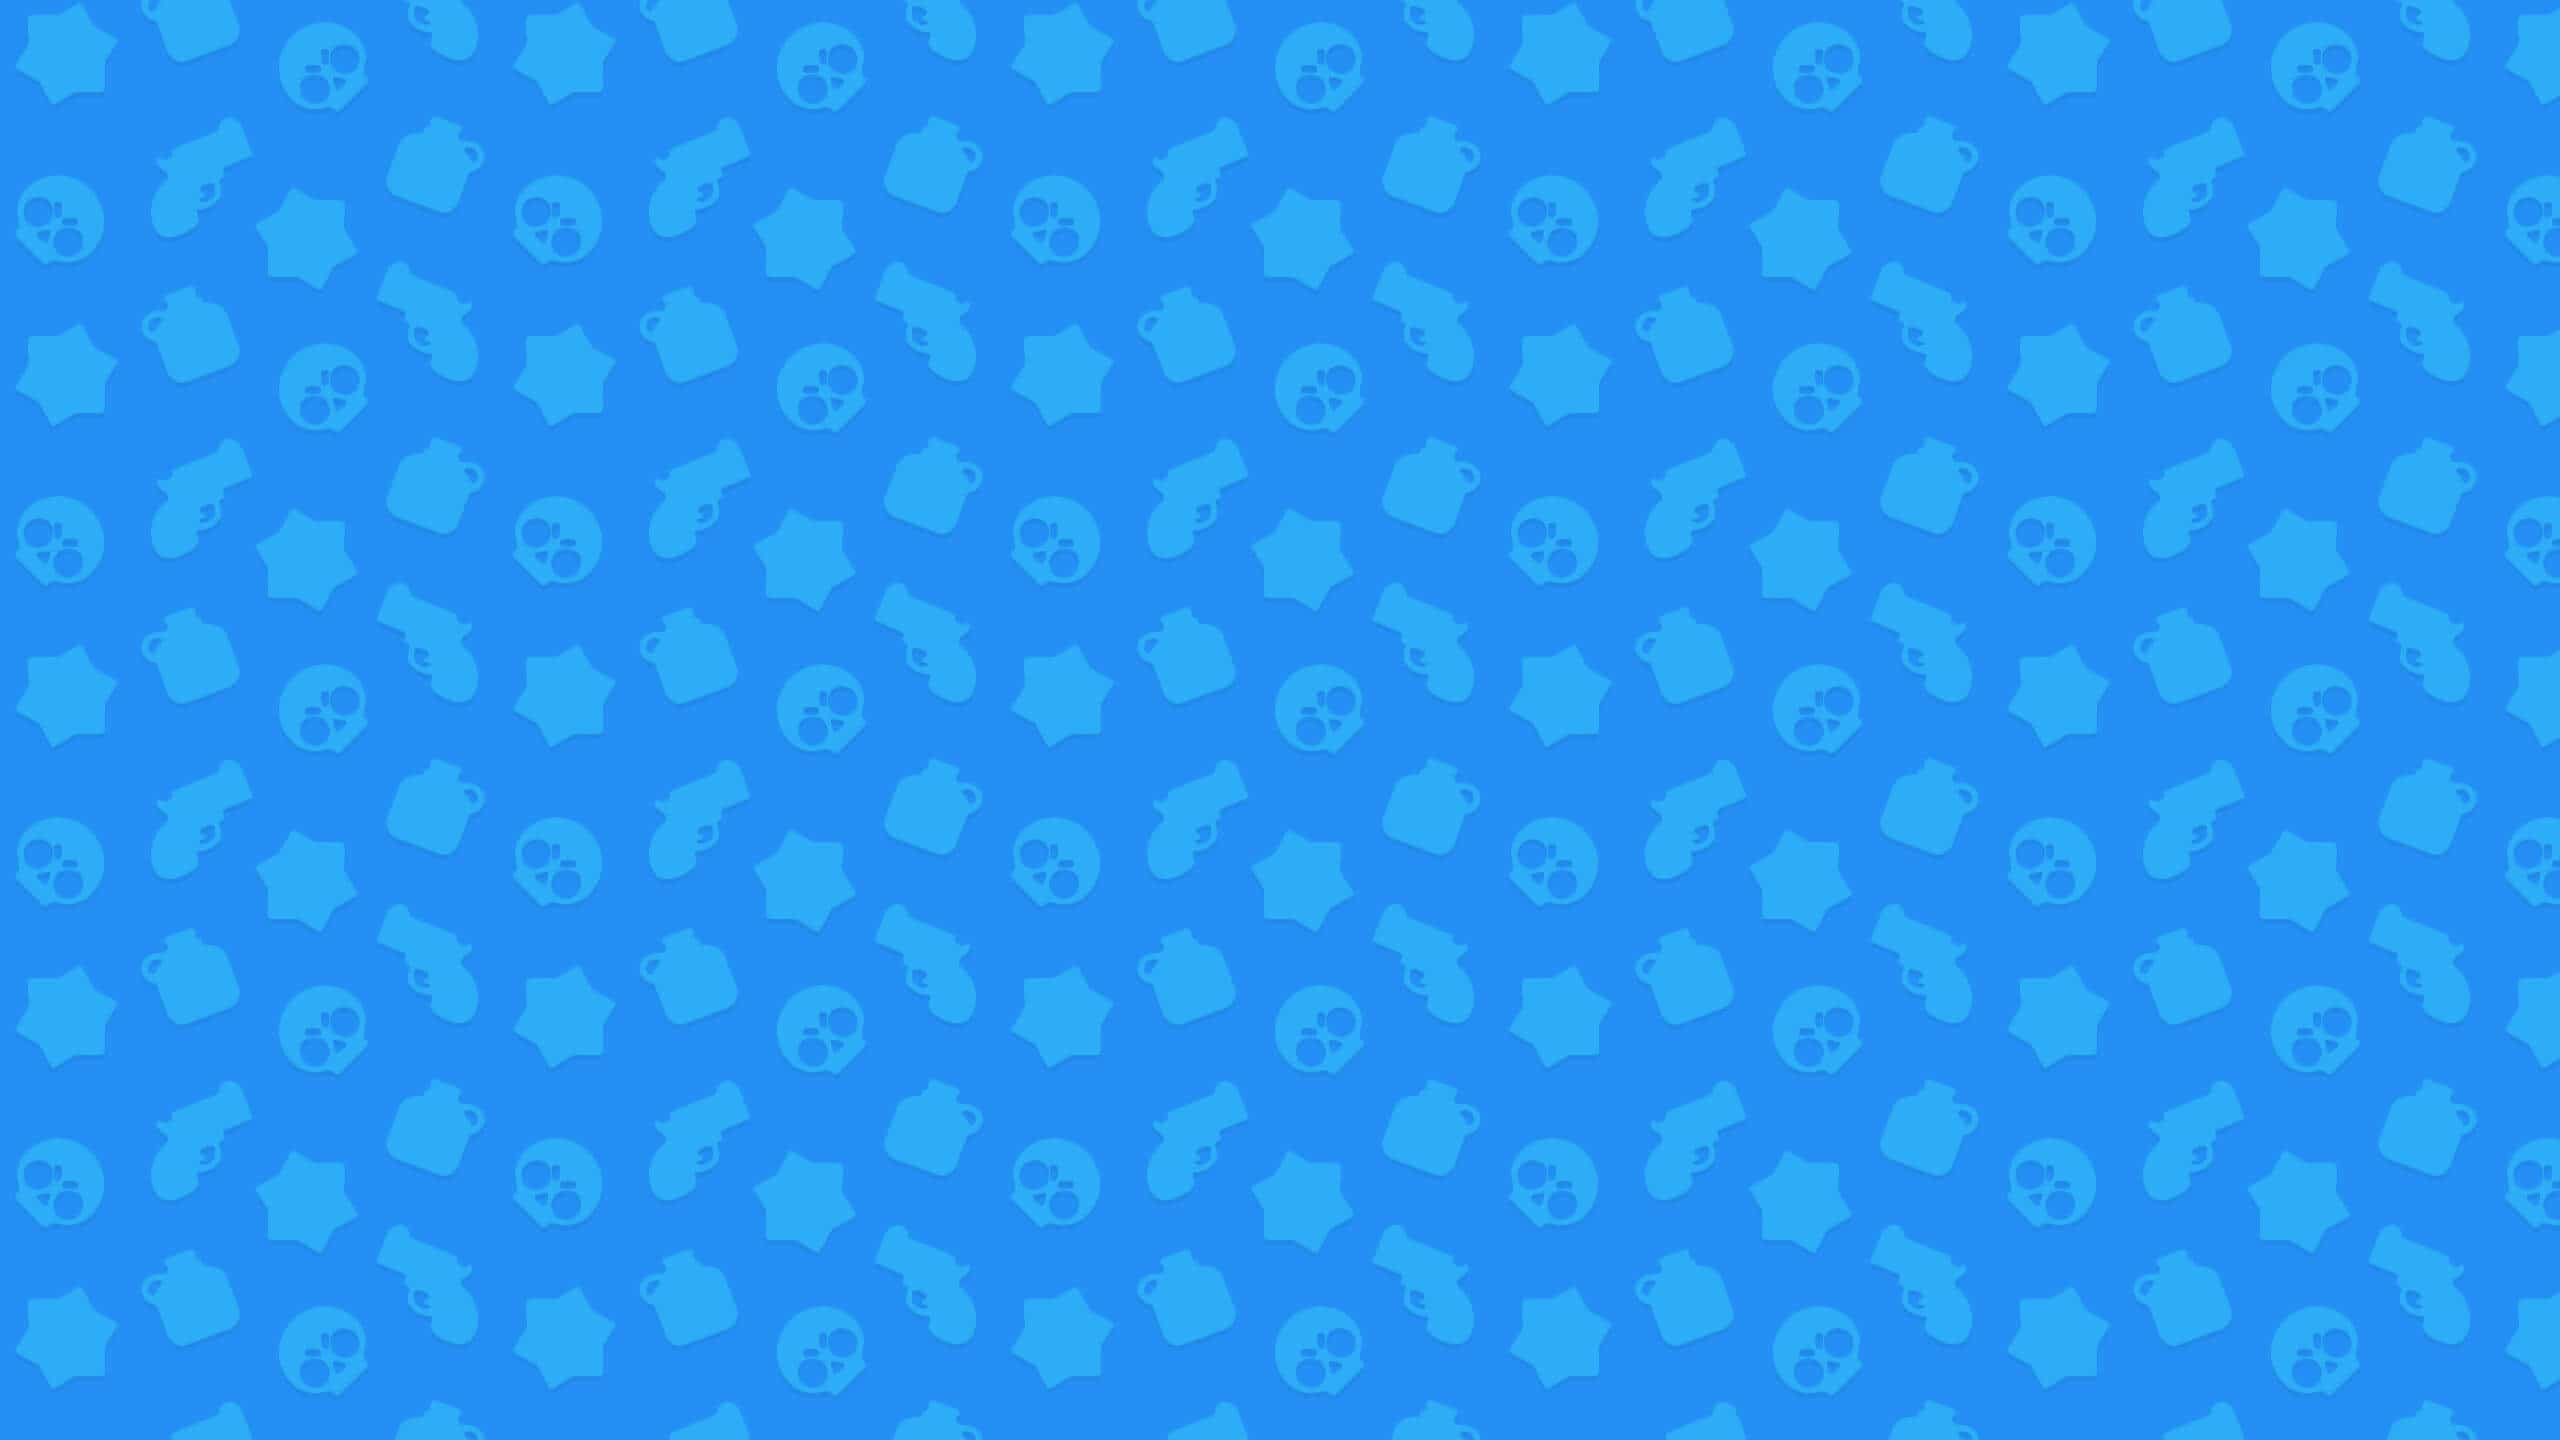 Brawl Stars Video Overlay And Tileable Pattern Deface Games